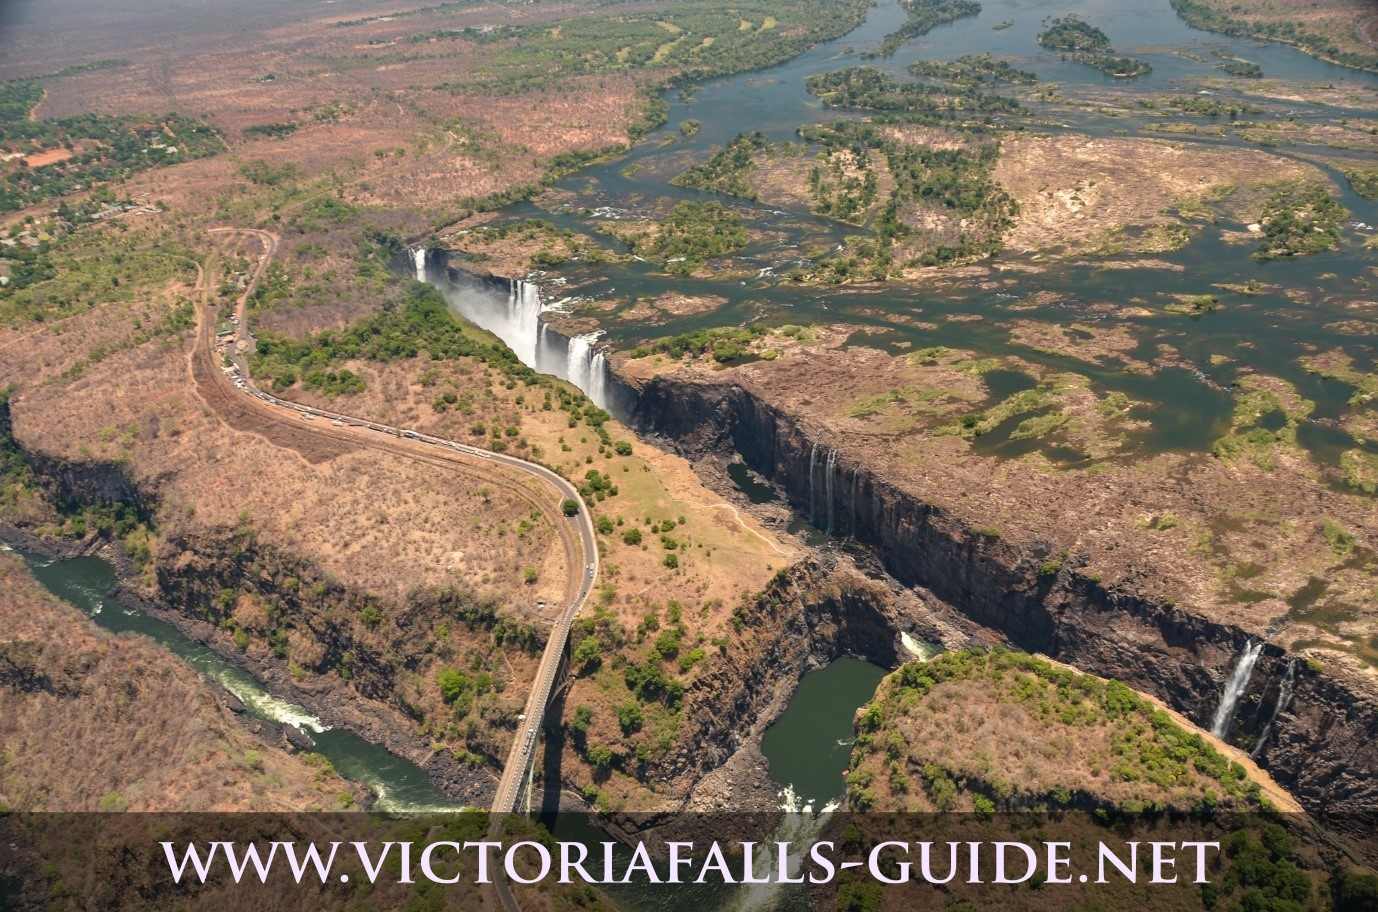 Aerial photo of Victoria Falls 7 November 2014 -Zambia side